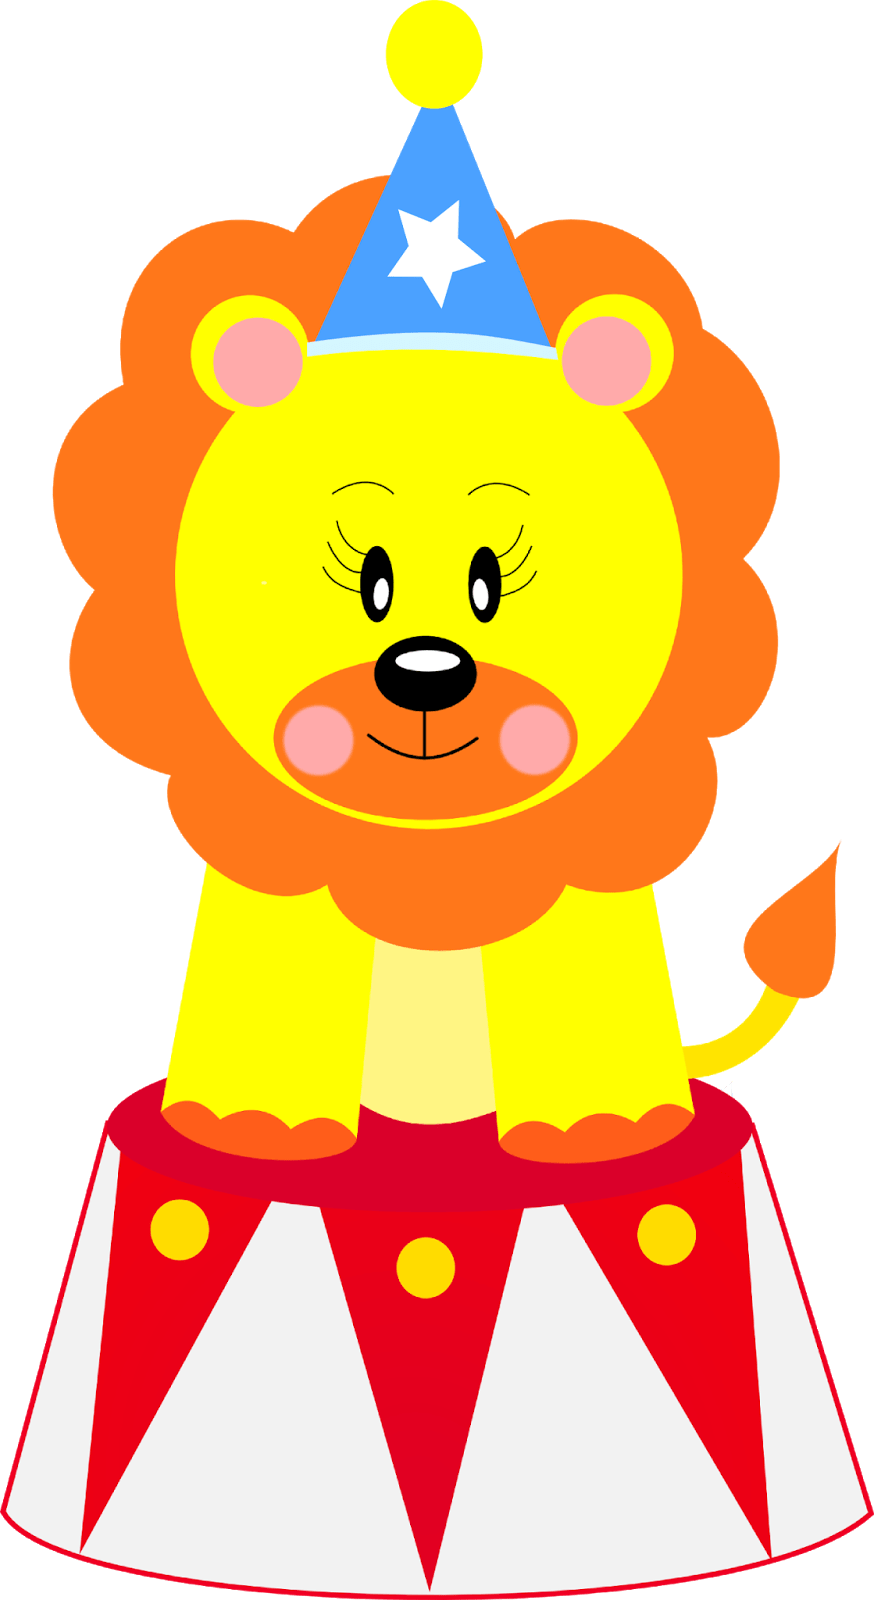 Leao circo clipart picture transparent Circo Clip Art Mickey - Leão Circo Png Transparent Png - Full Size ... picture transparent